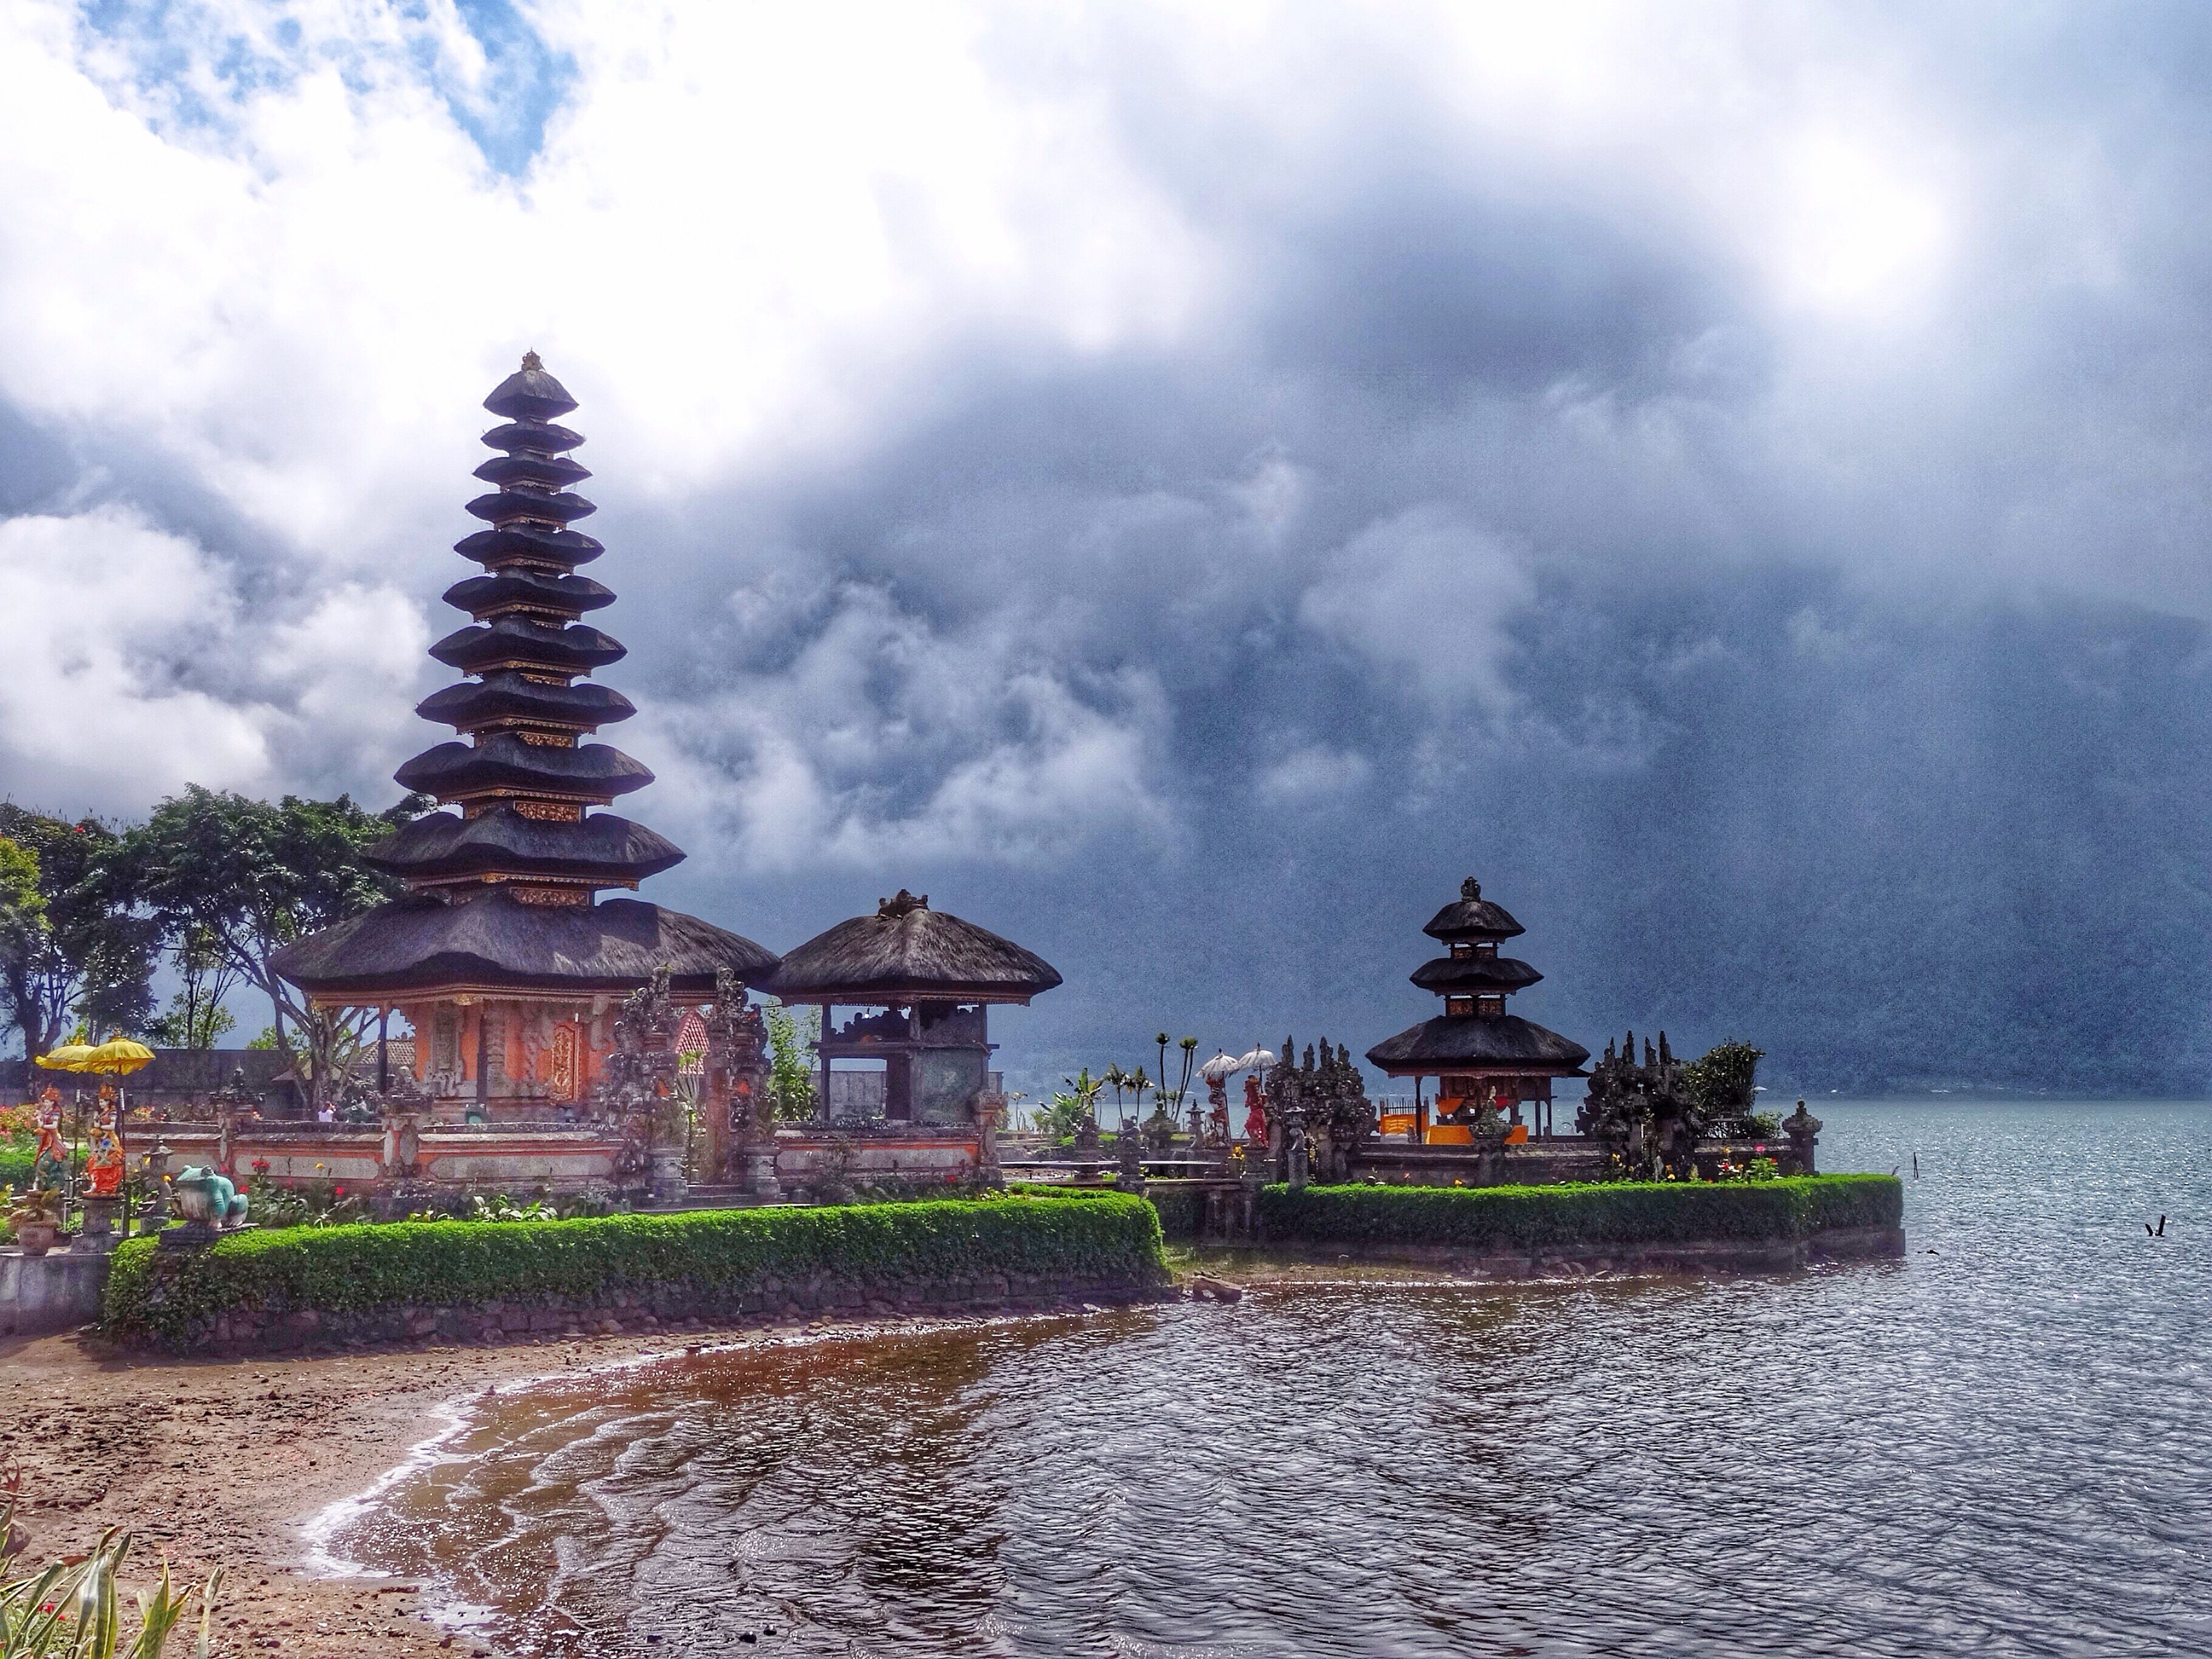 sky, water, built structure, architecture, cloud - sky, building exterior, fountain, religion, spirituality, place of worship, cloudy, temple - building, cloud, famous place, travel destinations, waterfront, sculpture, outdoors, spraying, nature